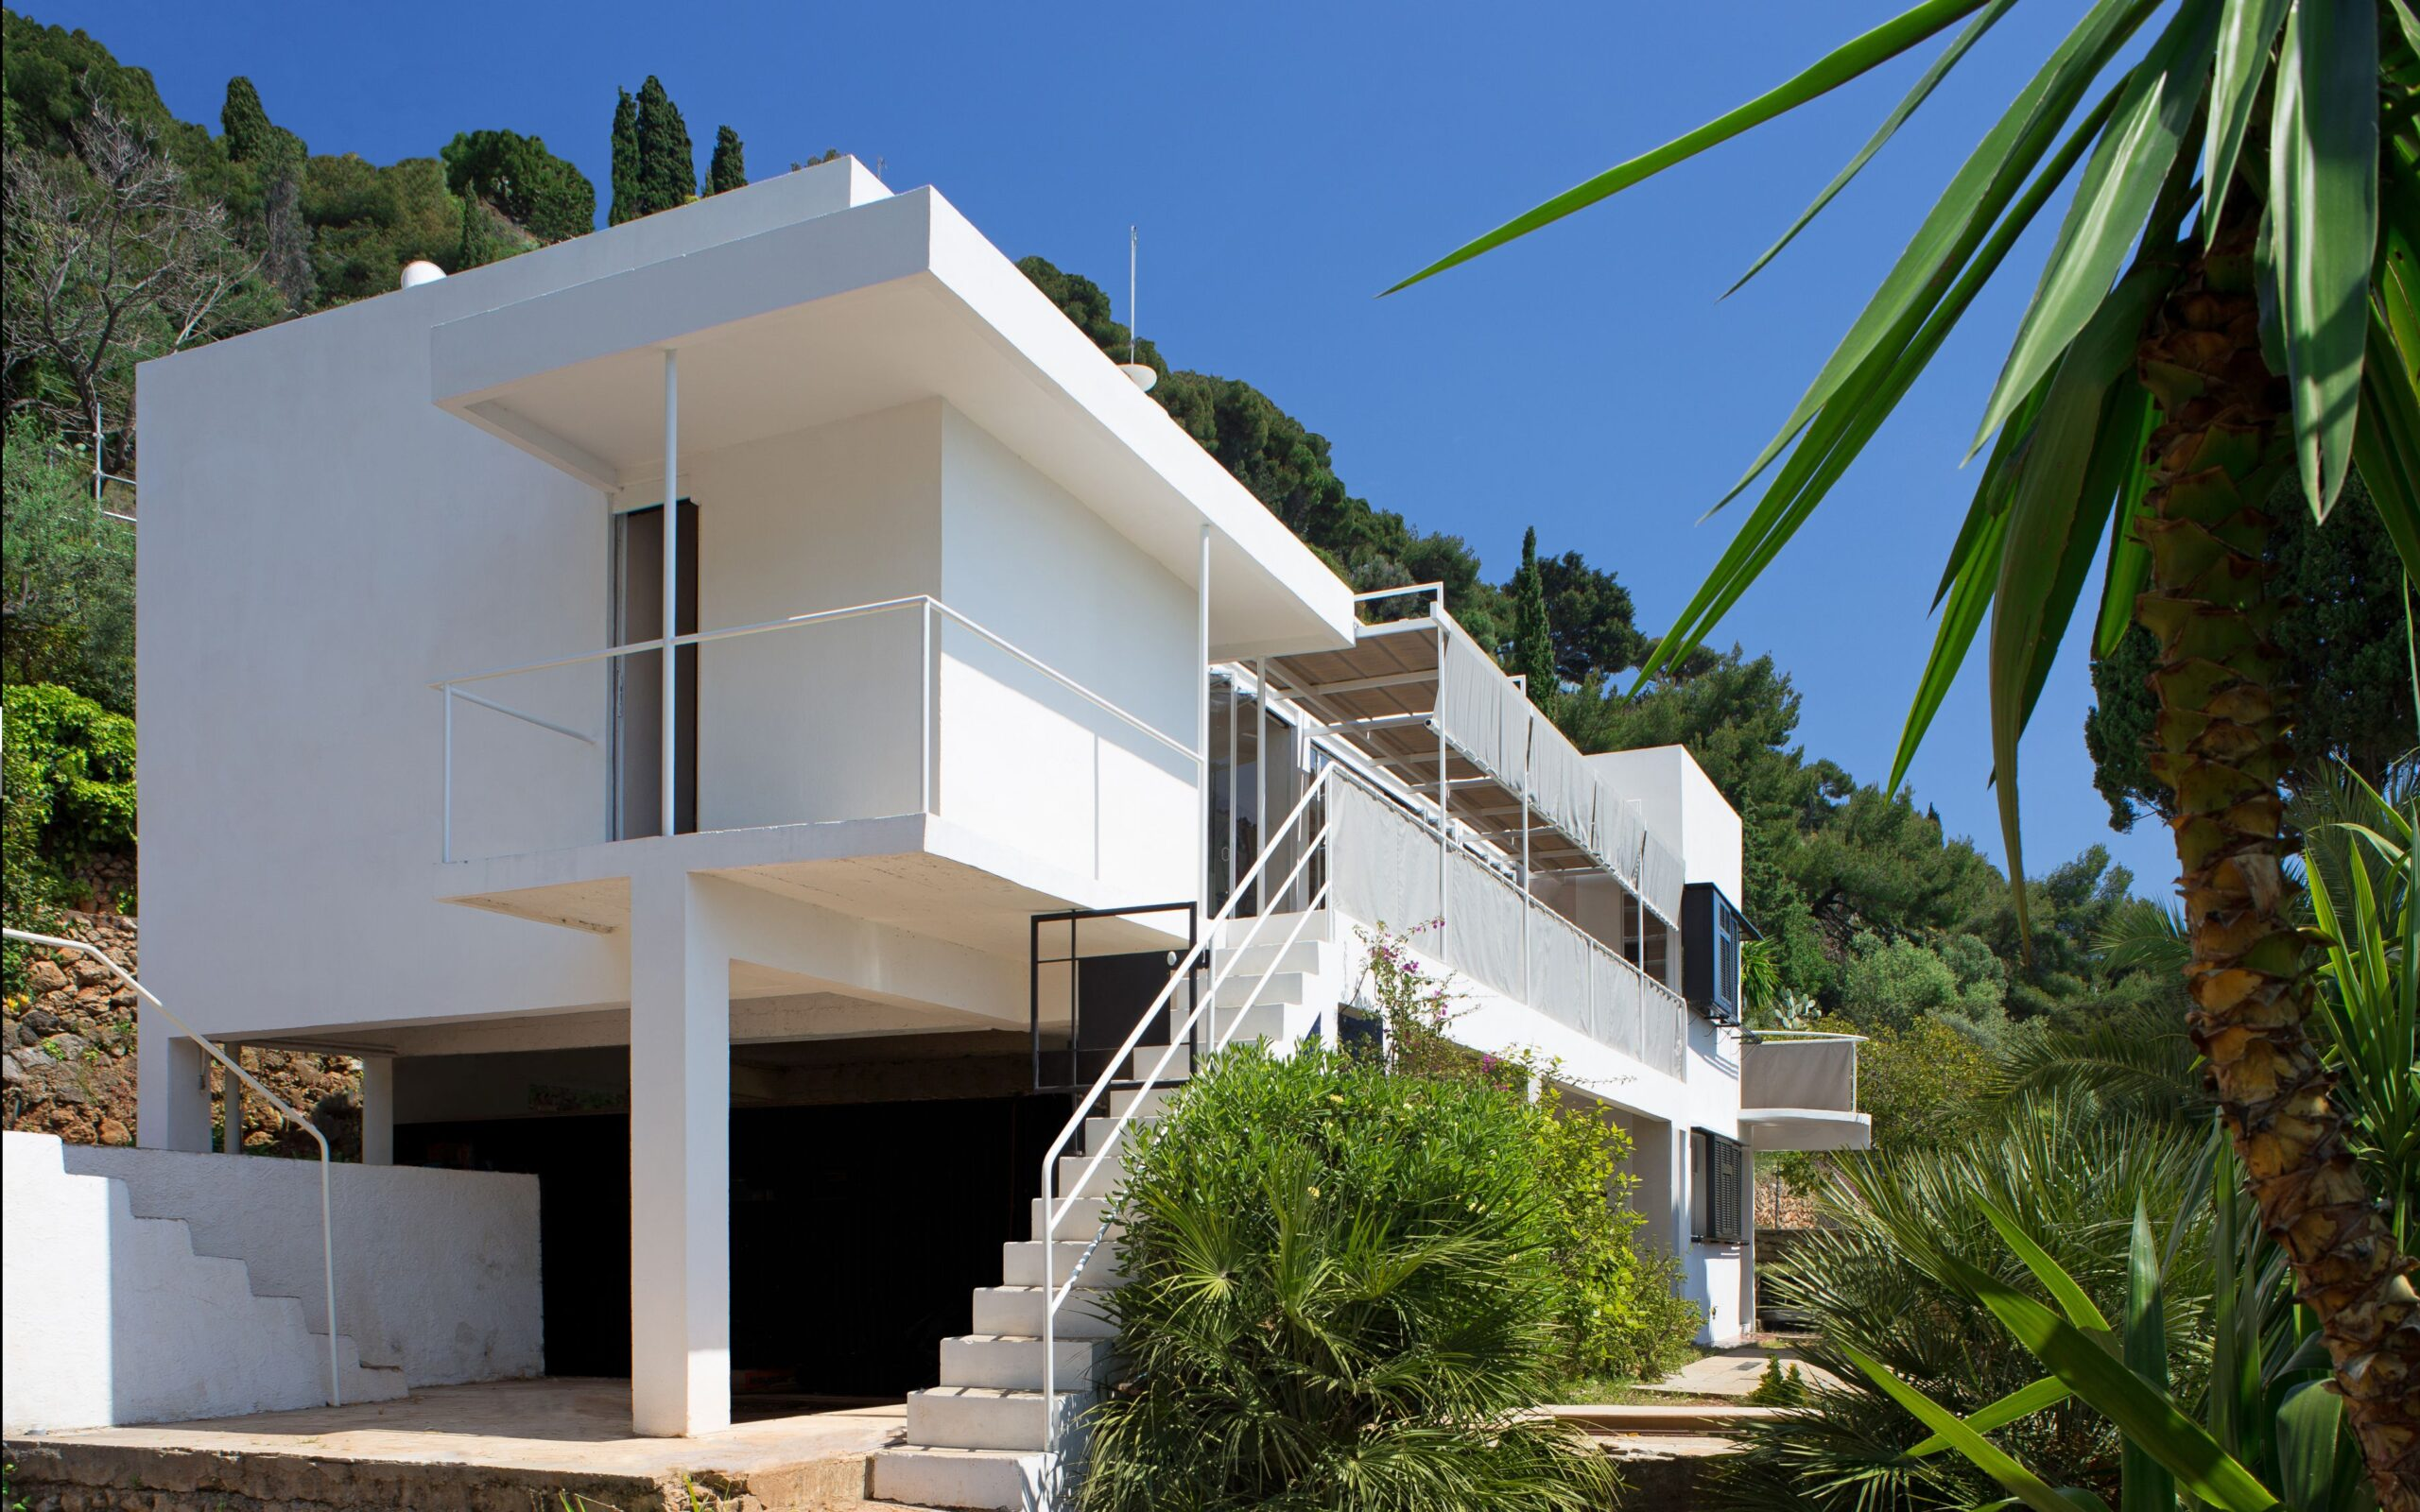 E-1027, designed by Eileen Gray in France in 1929. Photo courtesy of e1027.org